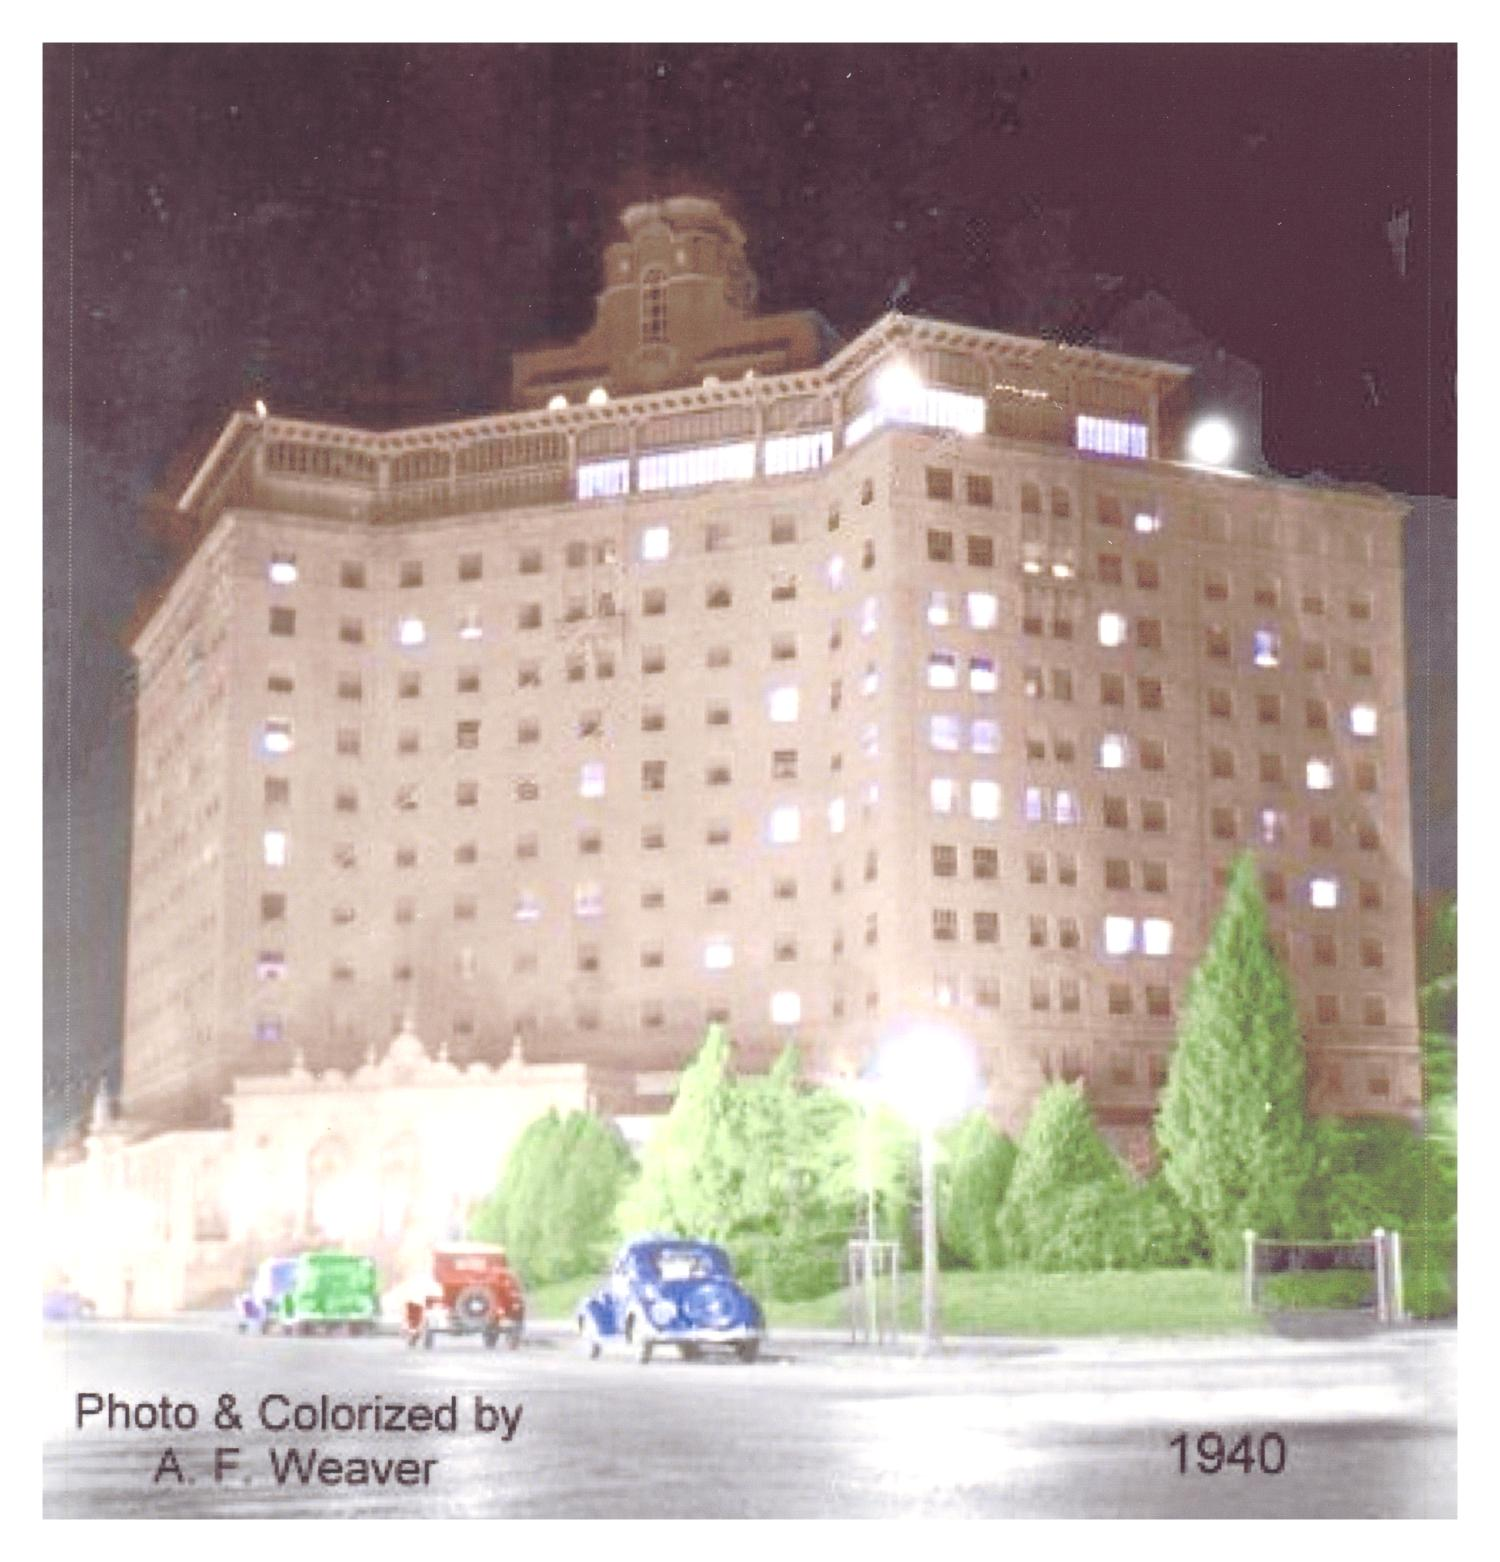 [The Baker Hotel at Night]                                                                                                      [Sequence #]: 1 of 1